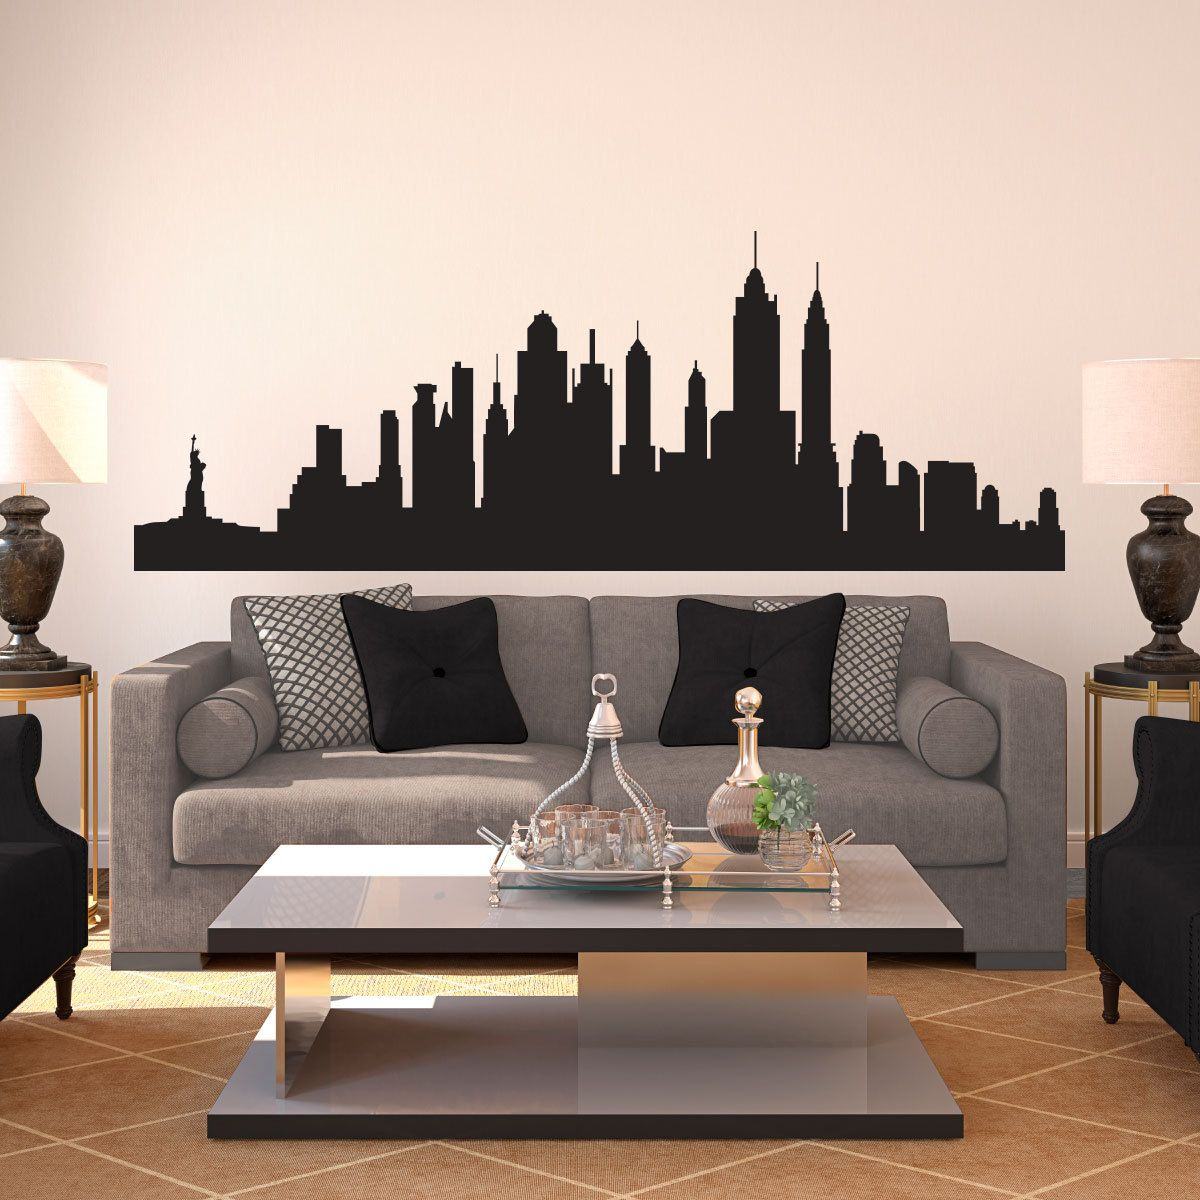 New York City Skyline Silhouette Large Wall Decal Custom Vinyl - Large custom vinyl stickers